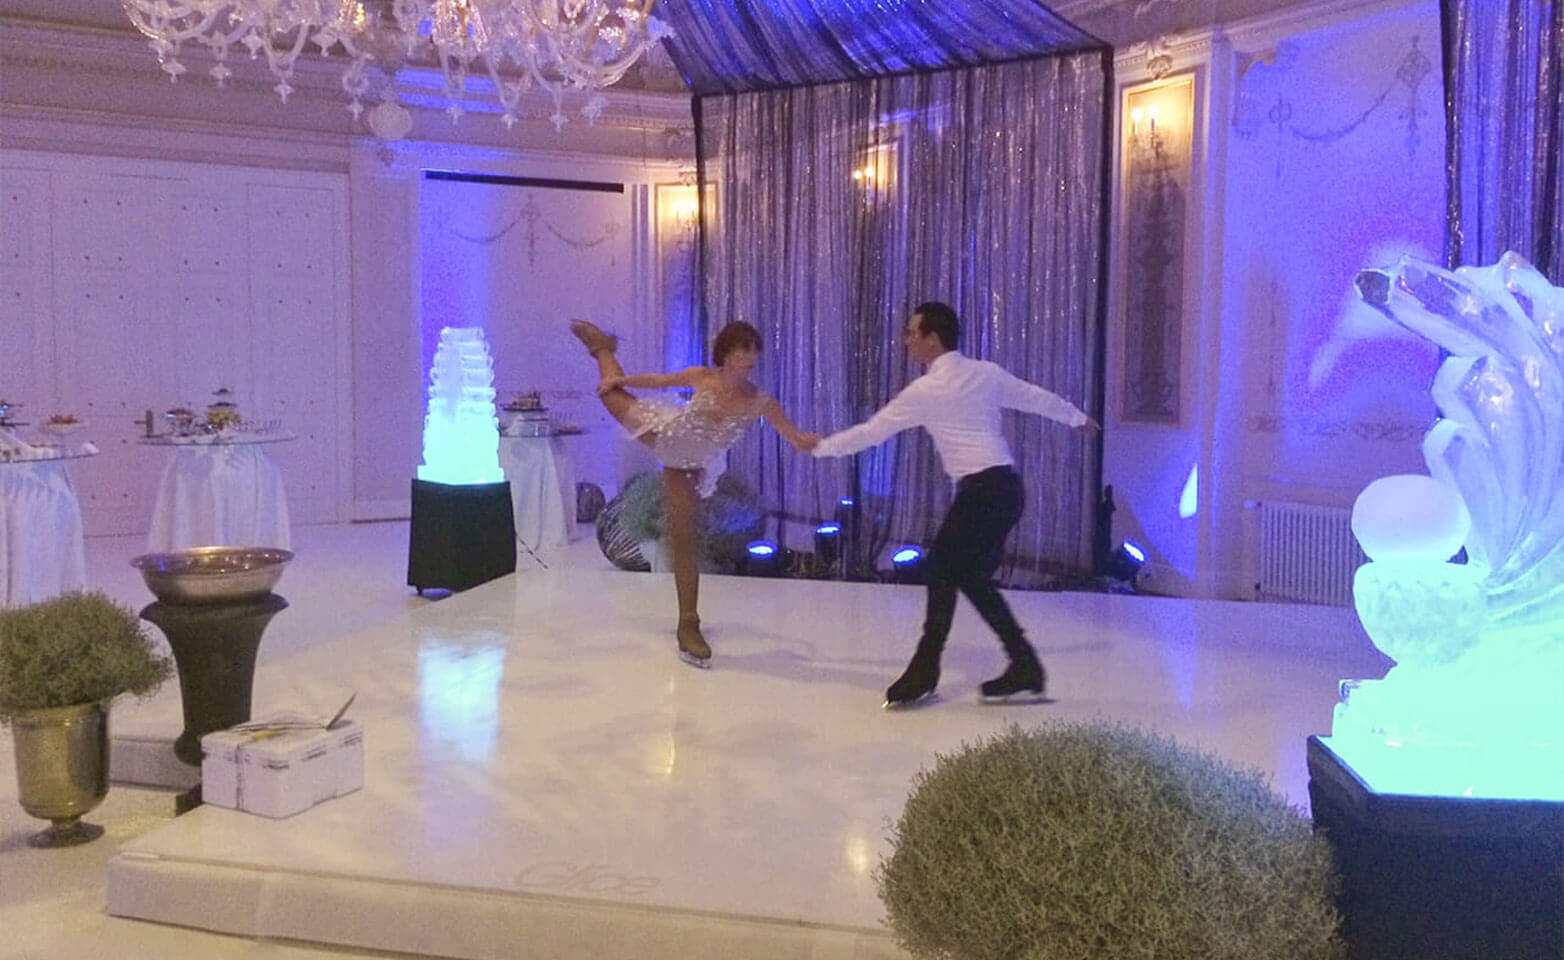 Professional figure skating couple performing on plastic ice pad at Swiss hotel